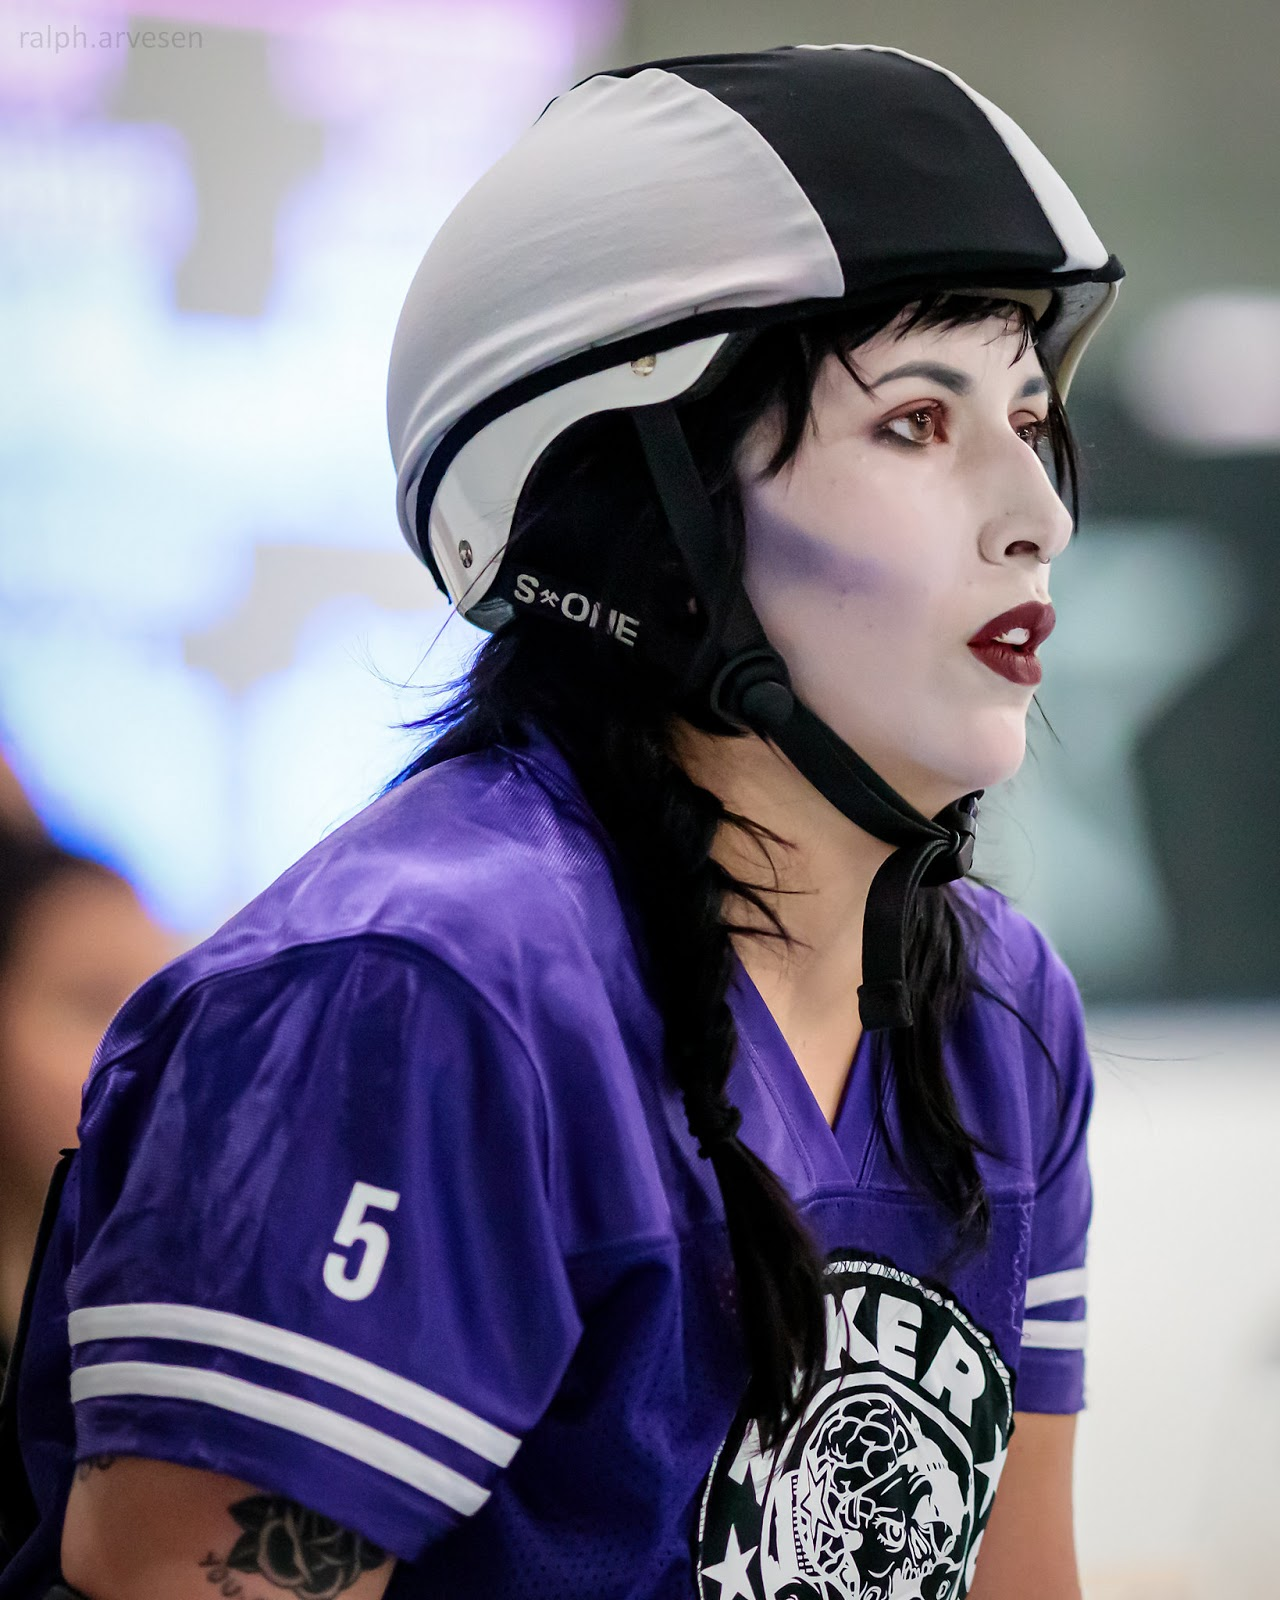 Roller Derby bout between the Zilker Zombies and The Lady Bird Lake Monsters | Texas Review | Ralph Arvesen